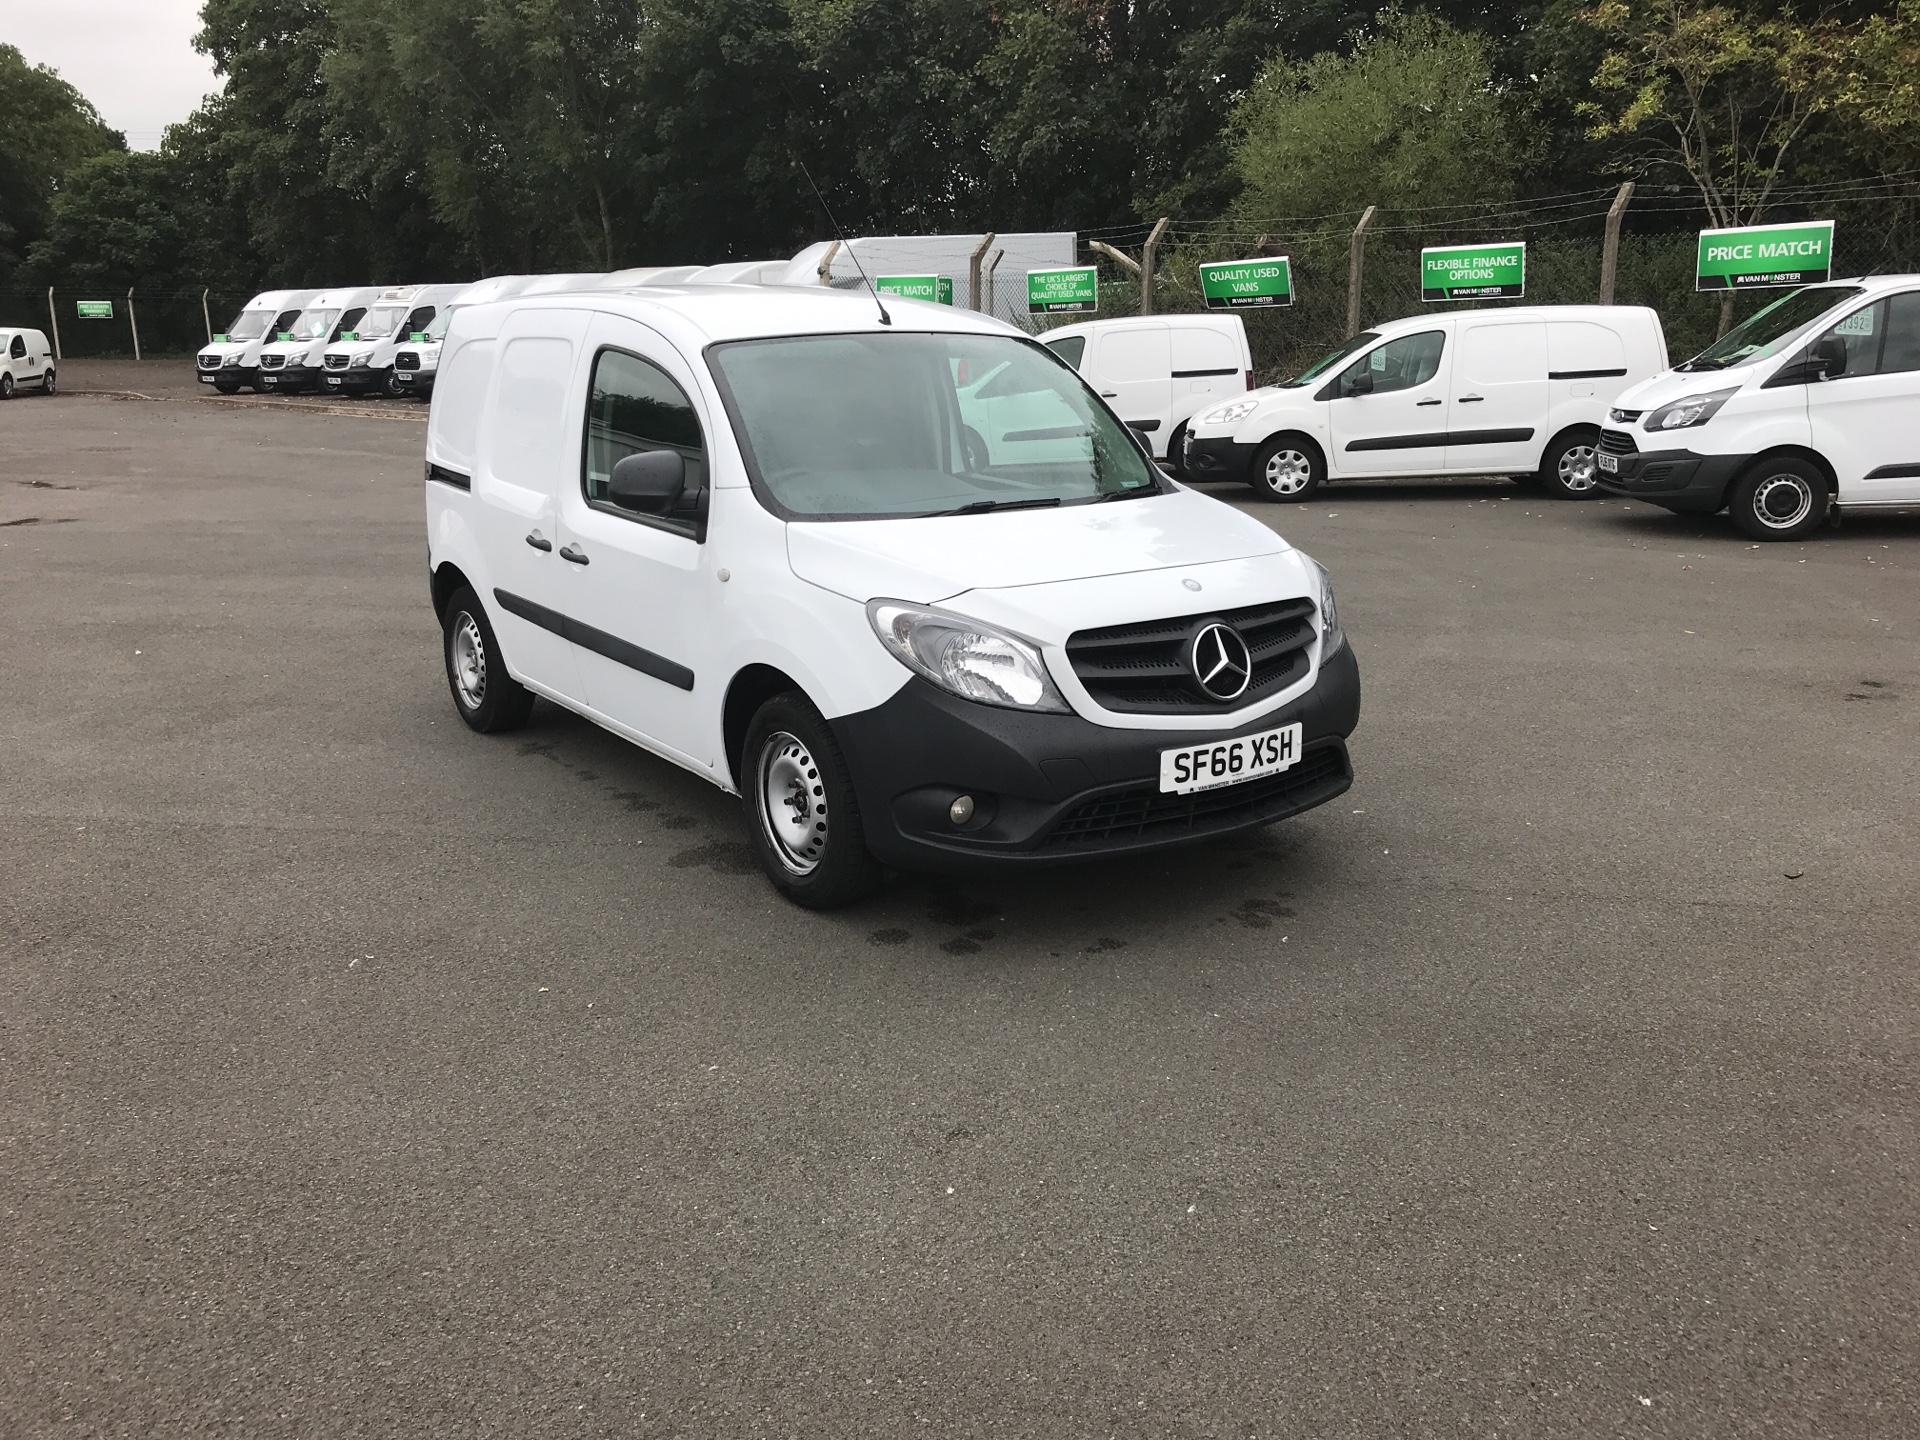 2016 Mercedes-Benz Citan 109 CDI VAN *VALUE RANGE VEHICLE - CONDITION REFLECTED IN PRICE*  (SF66XSH)